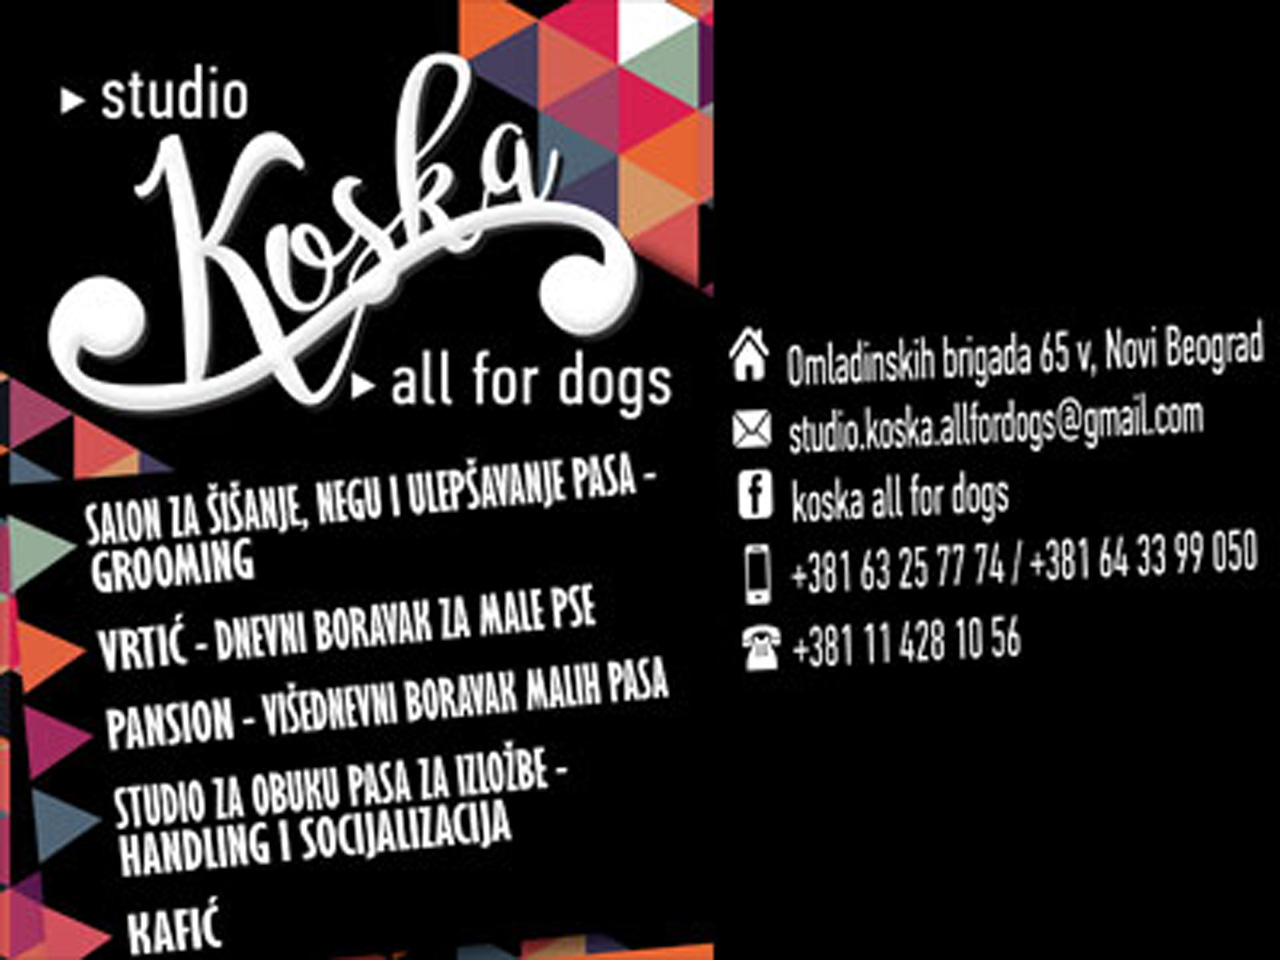 KOSKA ALL FOR DOGS Pet salon, dog grooming Beograd